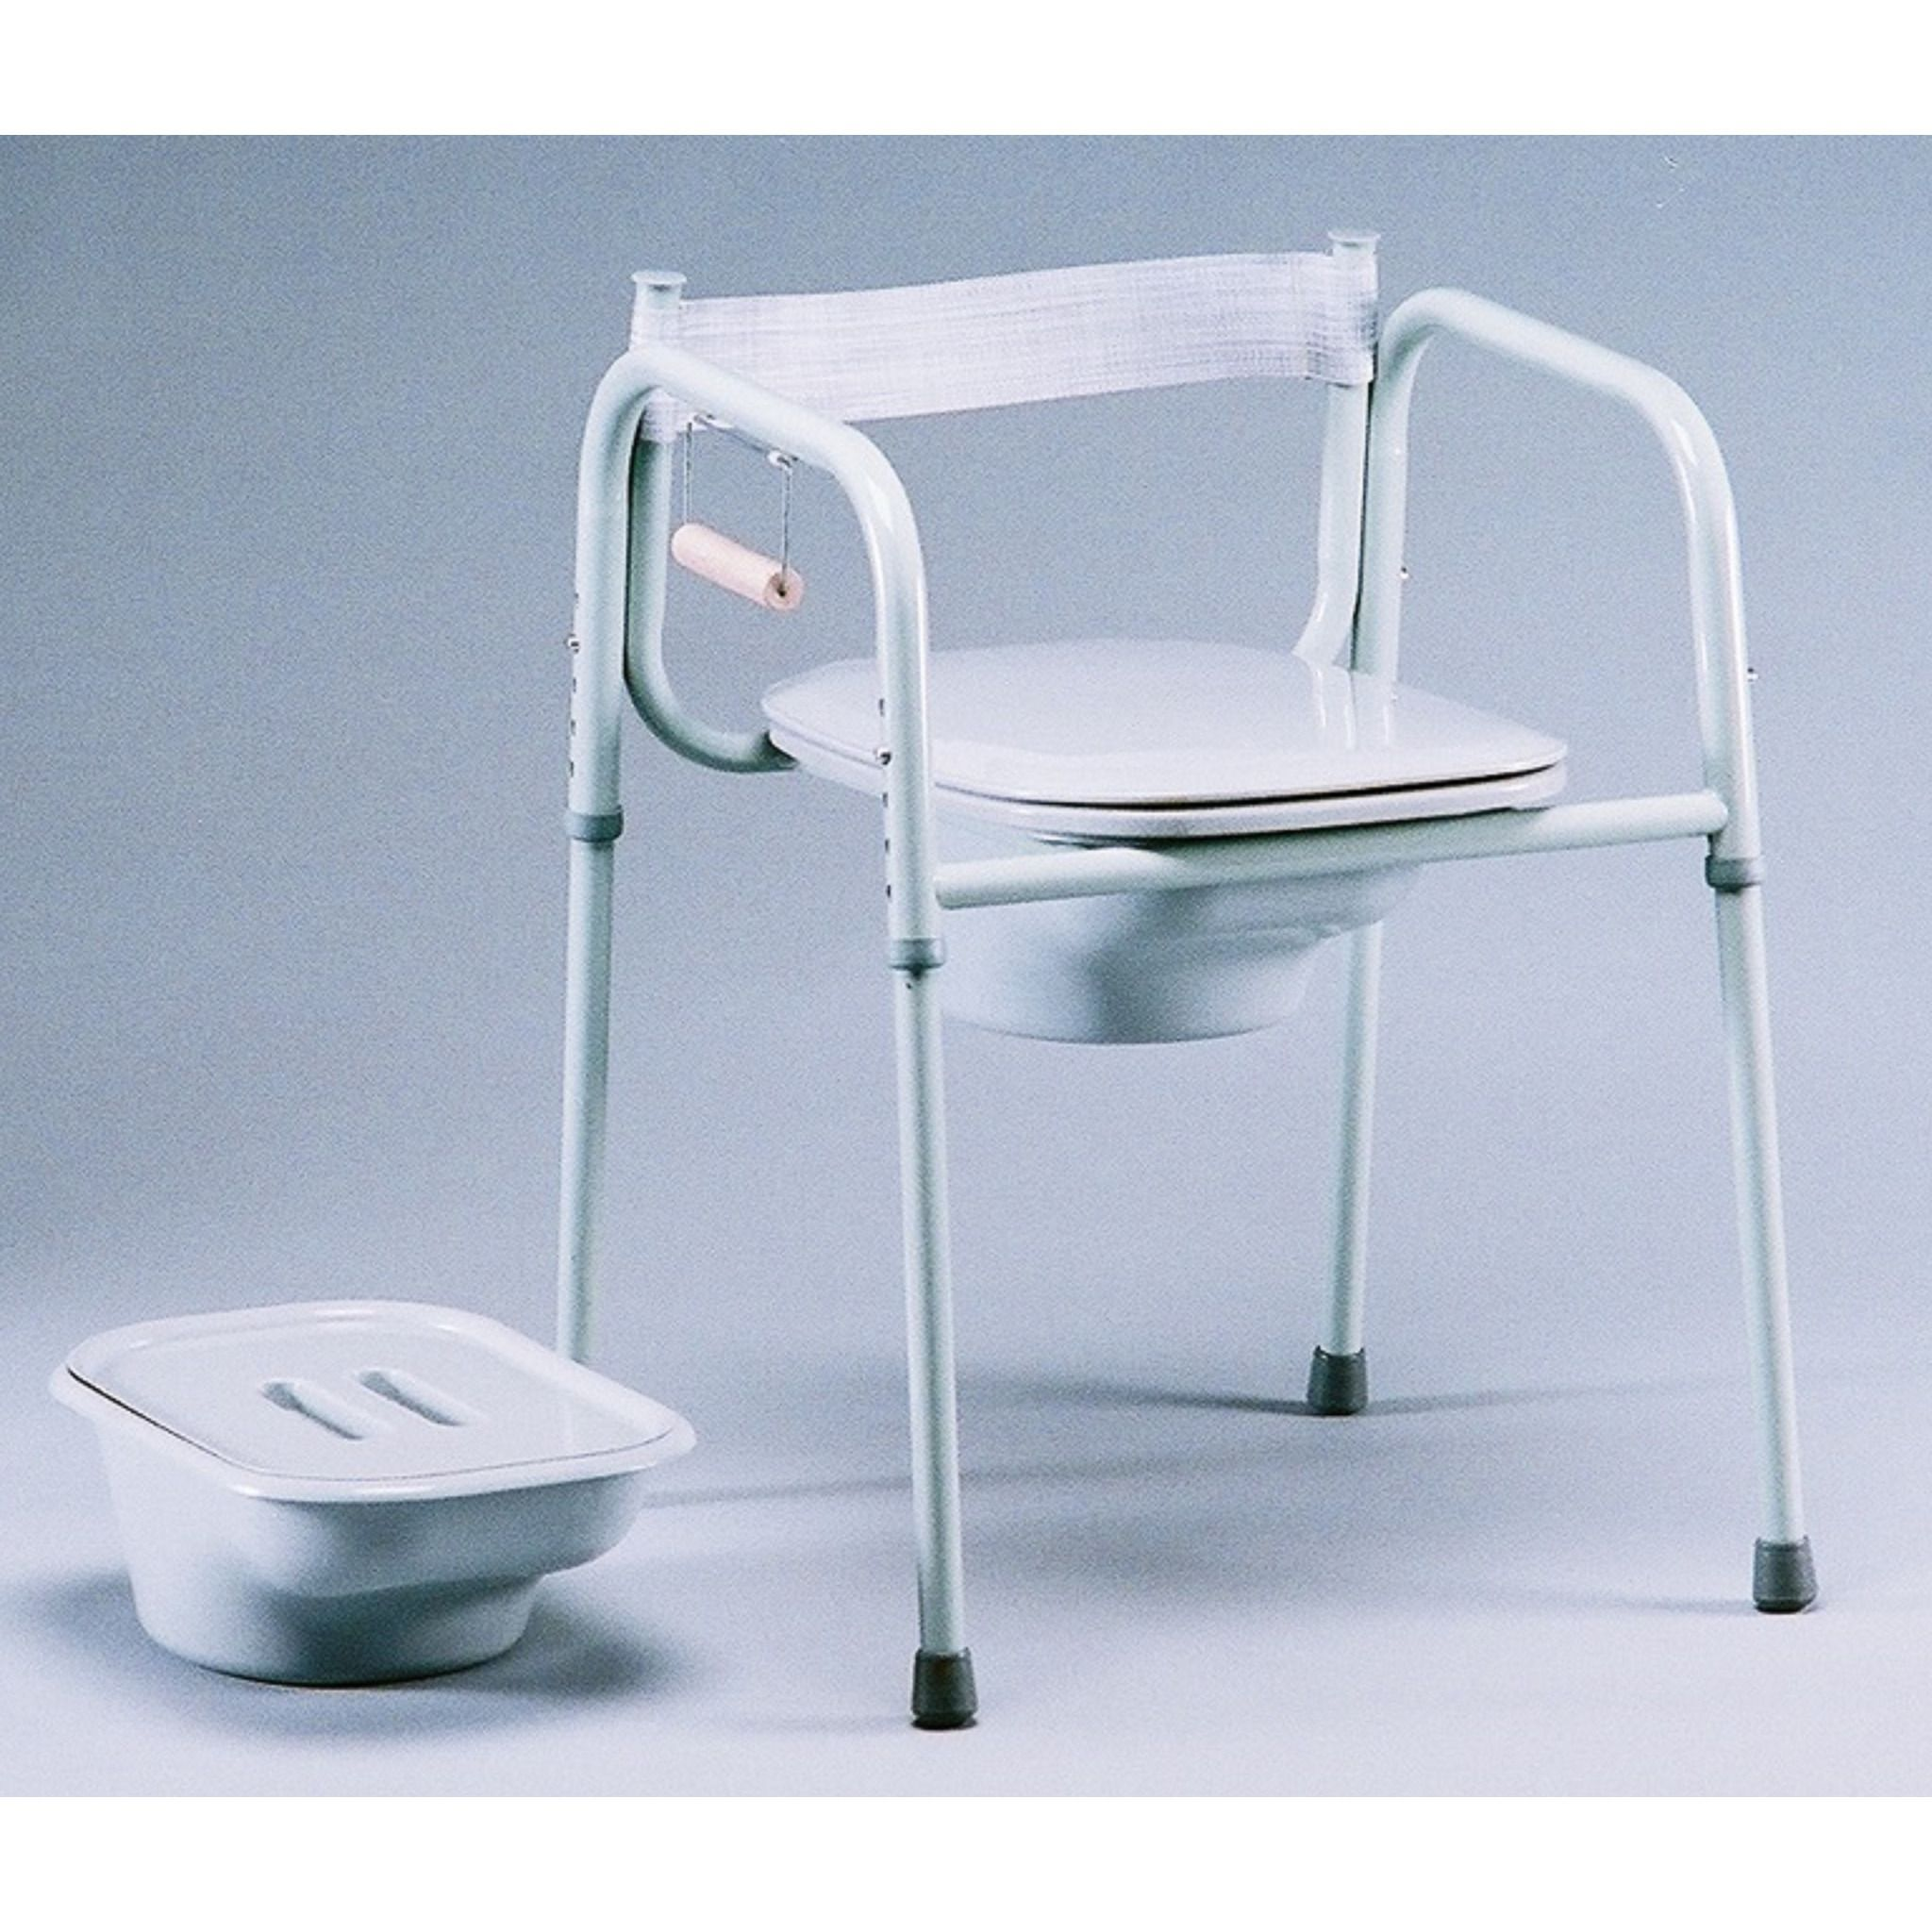 TFI Healthcare 3223G/1 3 in 1 Universal Steel Commode with Removable ...